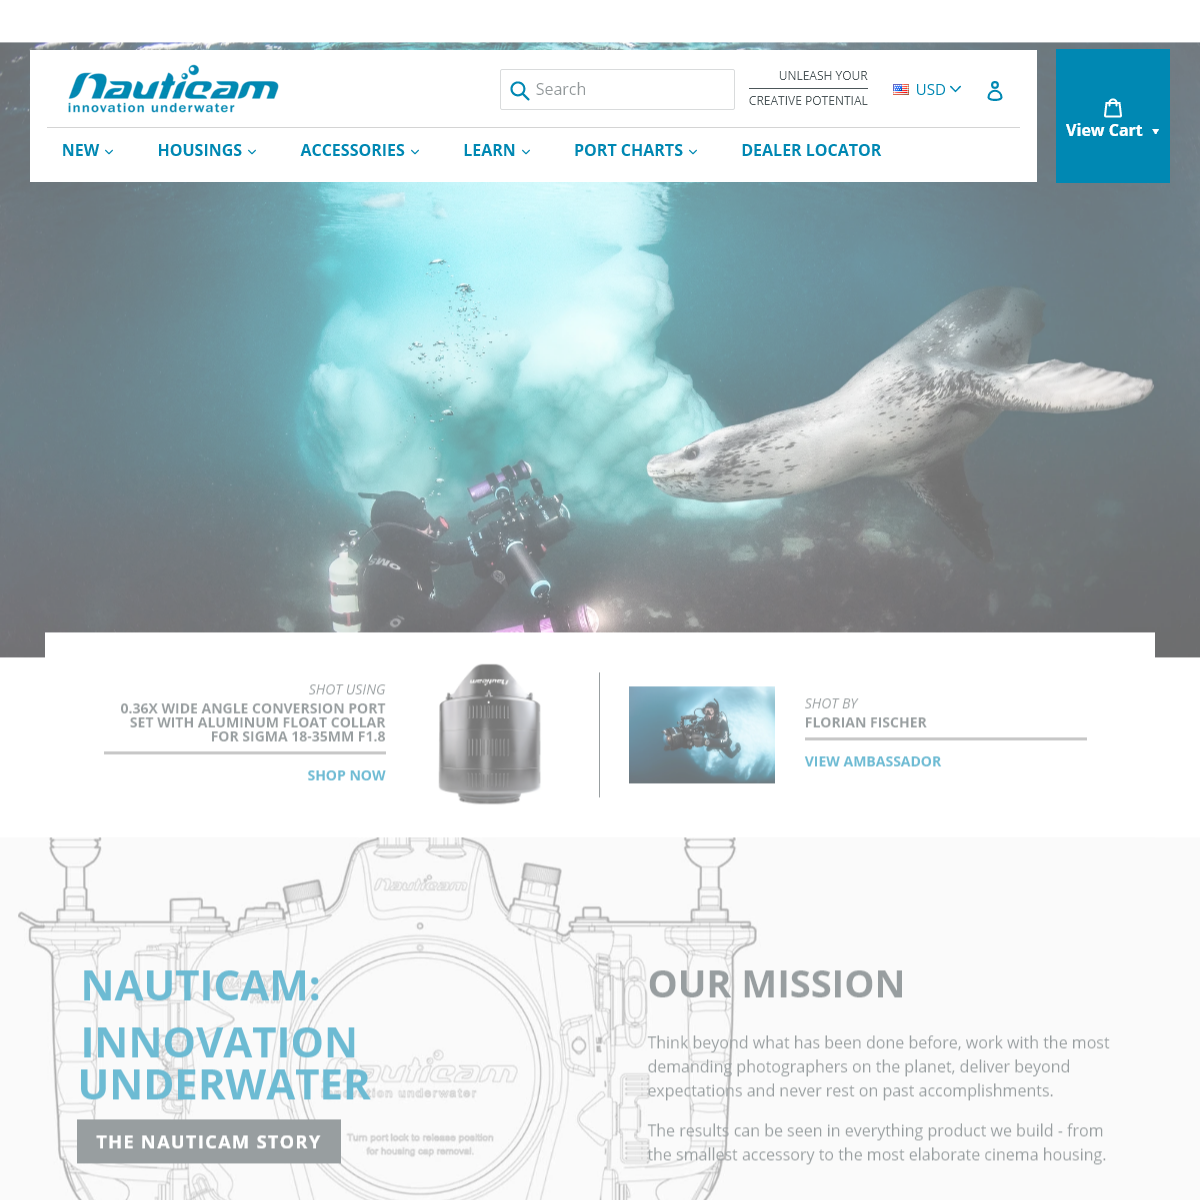 Nauticam - Innovation Underwater